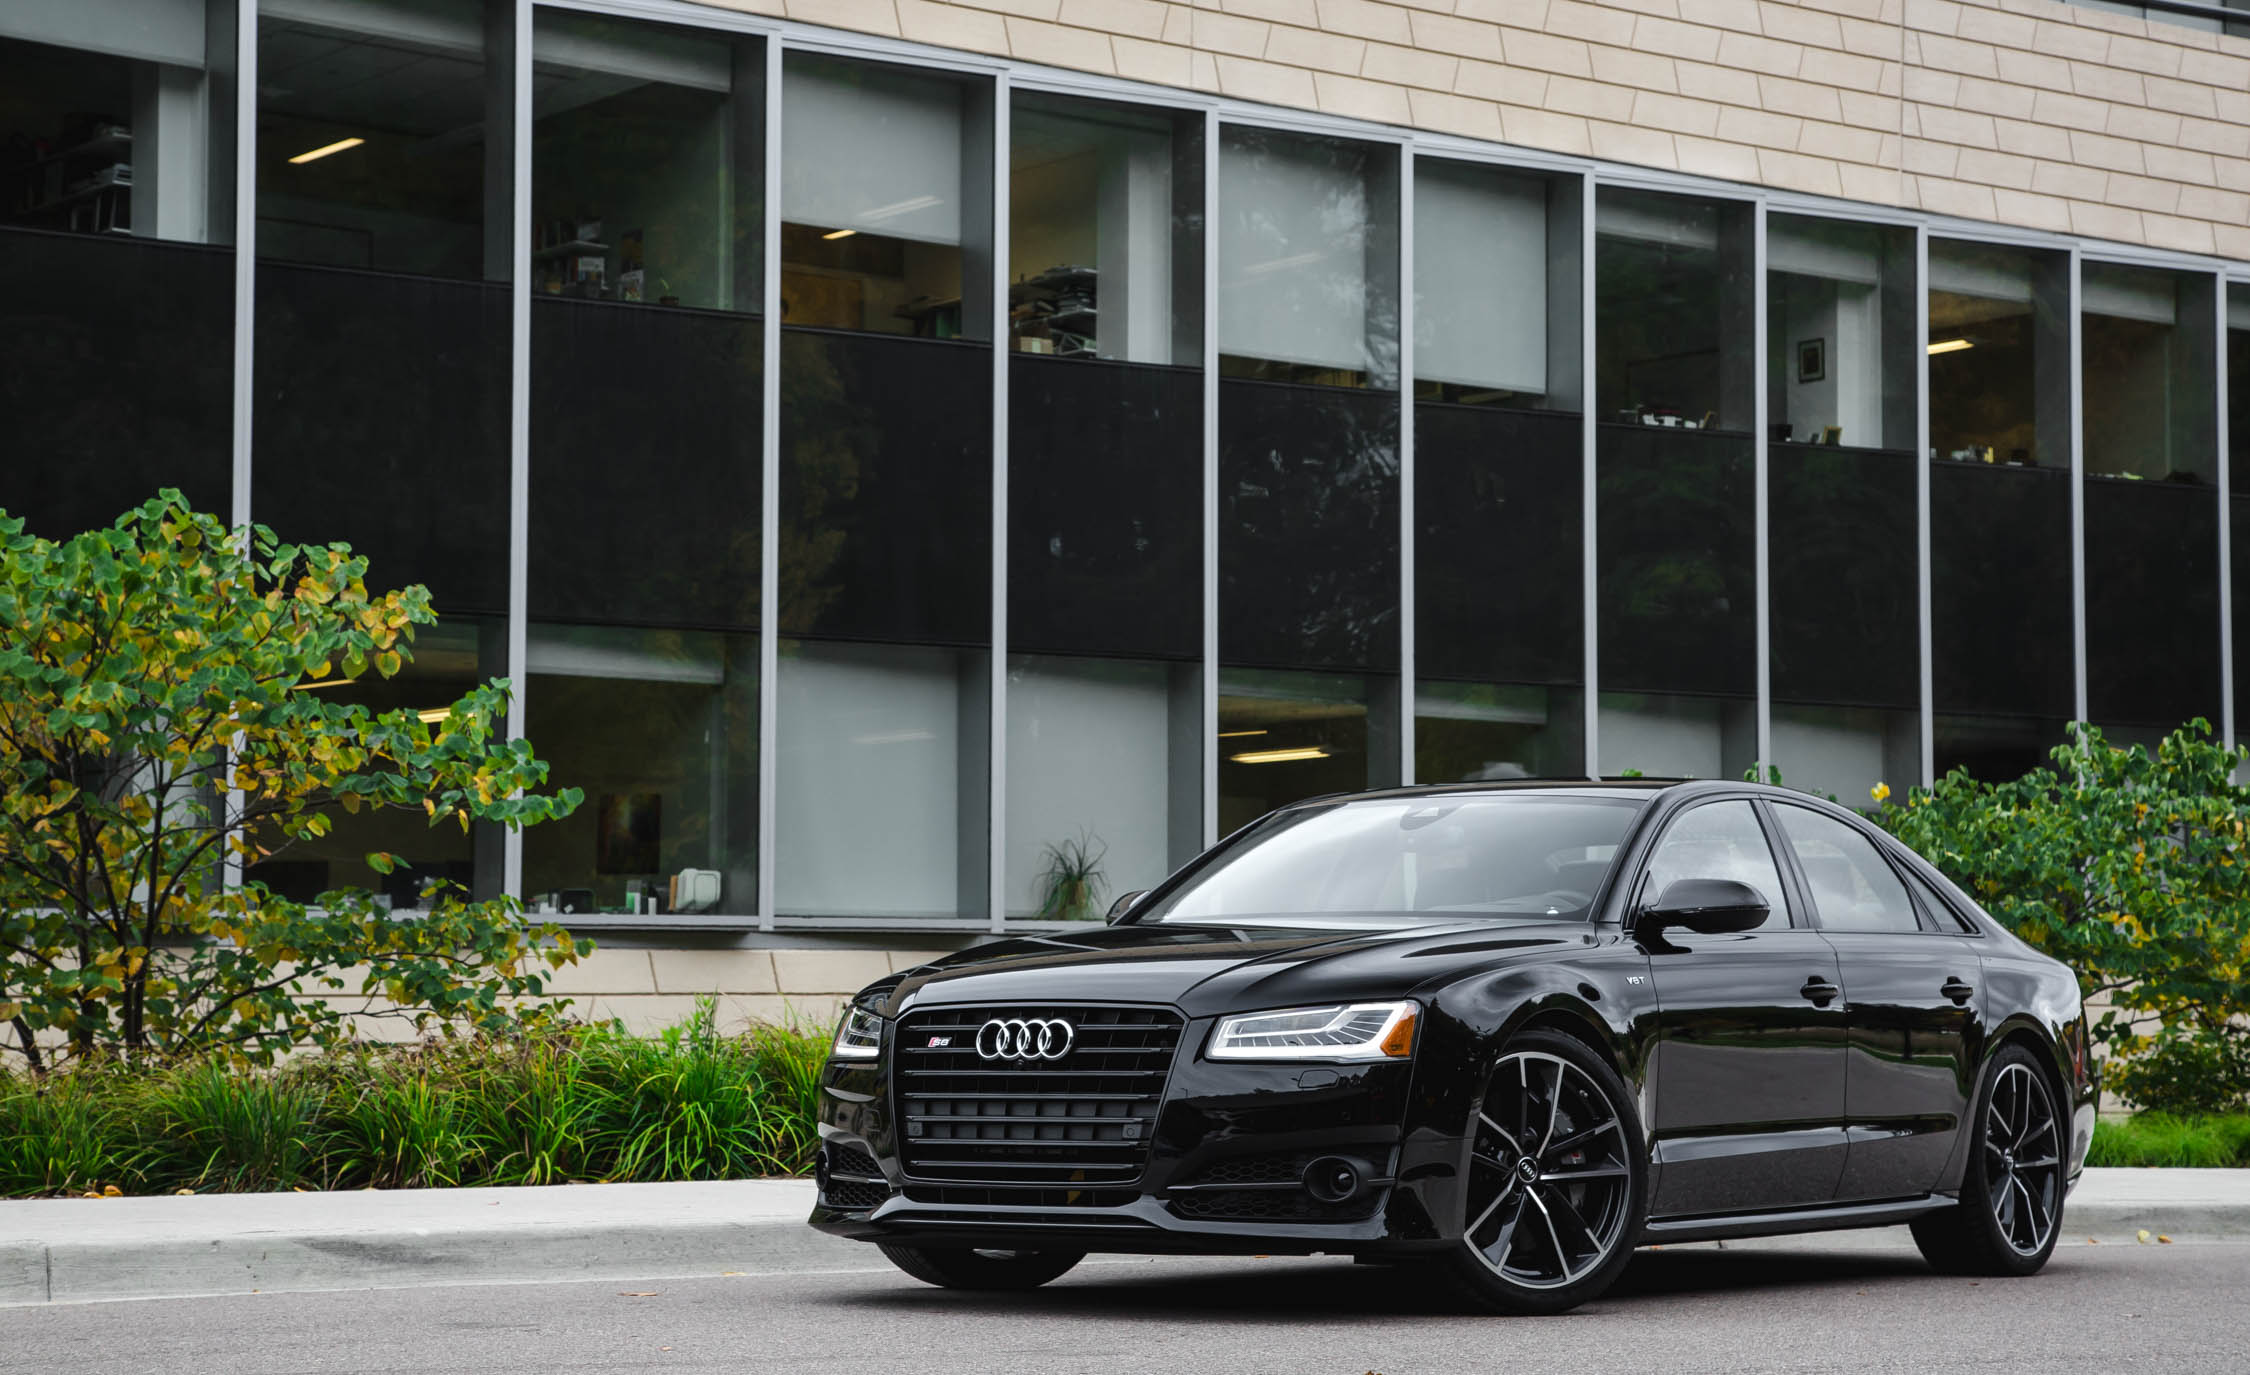 2017 Audi S8 Plus Exterior (Photo 2 of 36)